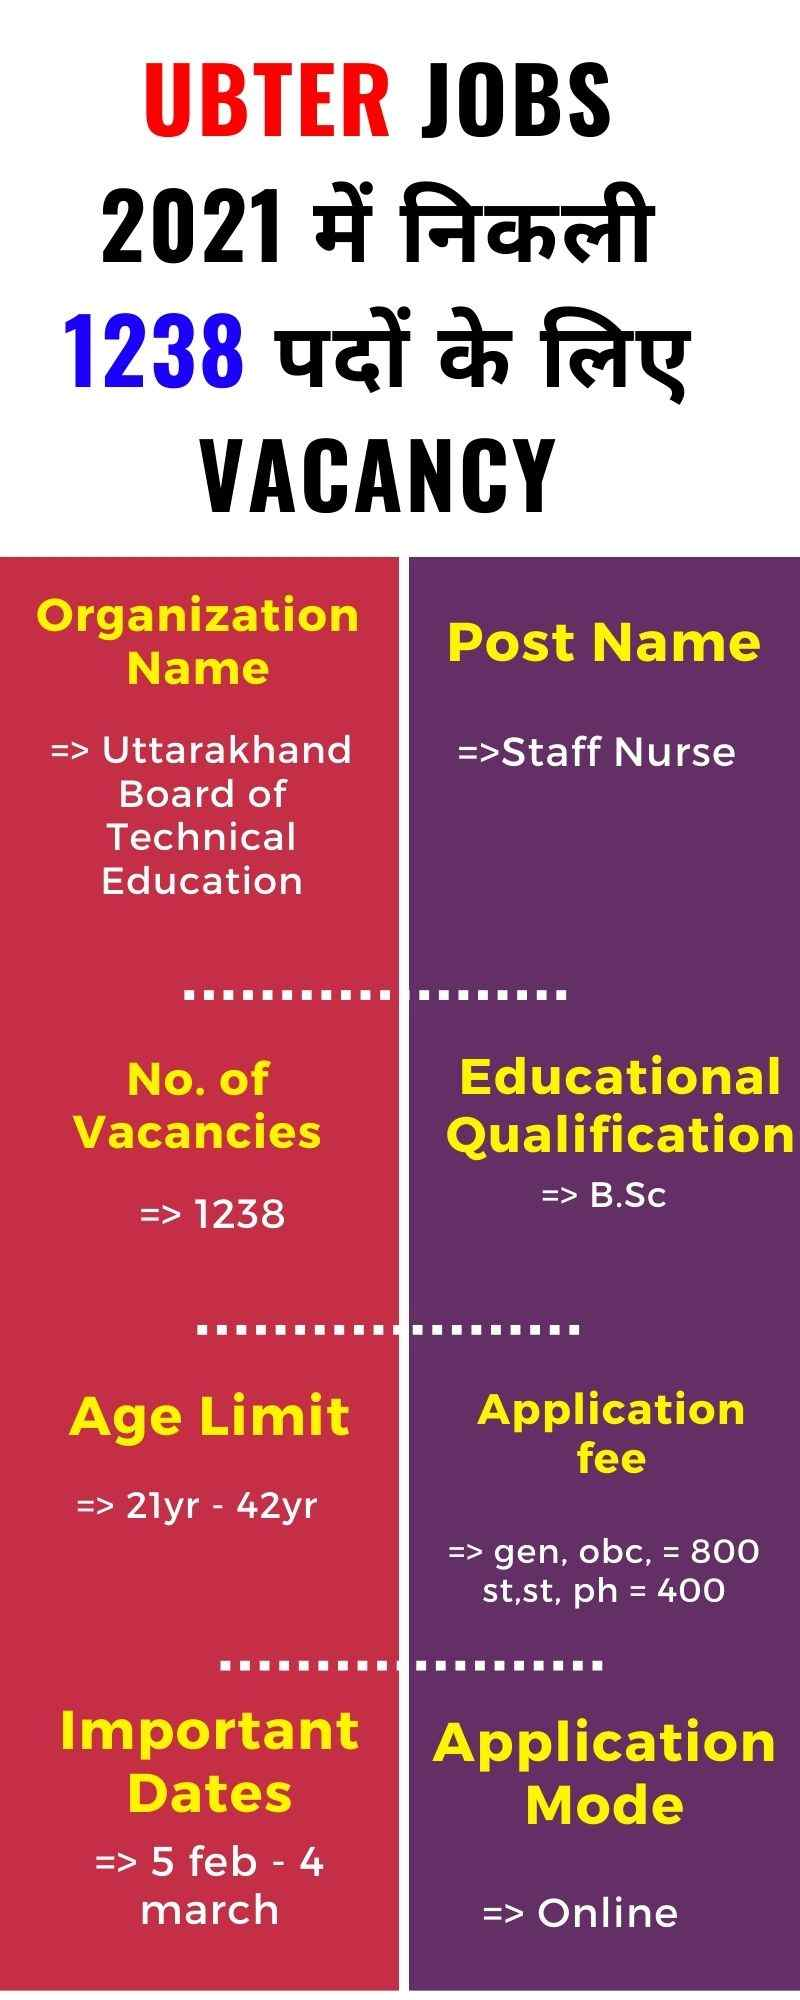 UBTER Recruitment 2021